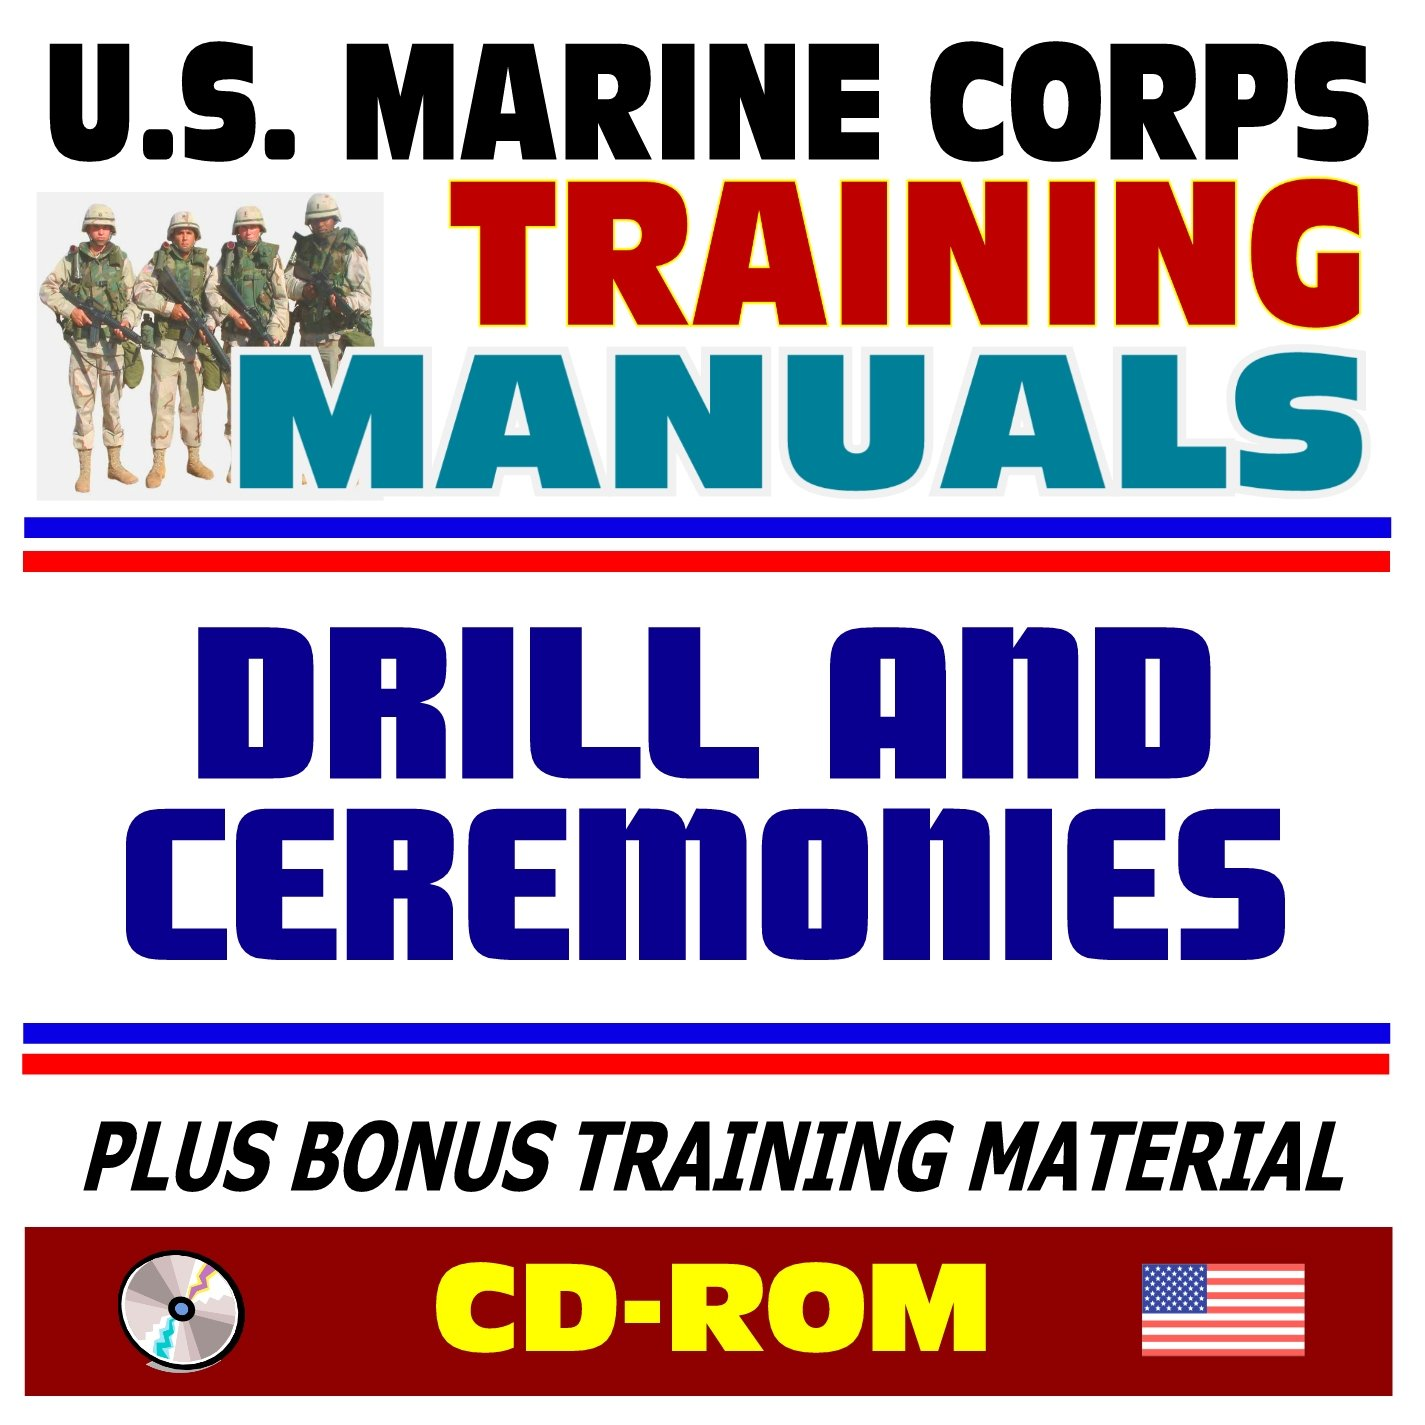 21st Century U.S. Marine Corps (USMC, Marines) Training Manuals: Drill and  Ceremonies - Manual of Arms, Sword, Parades, Honors, History, Funerals and  ...